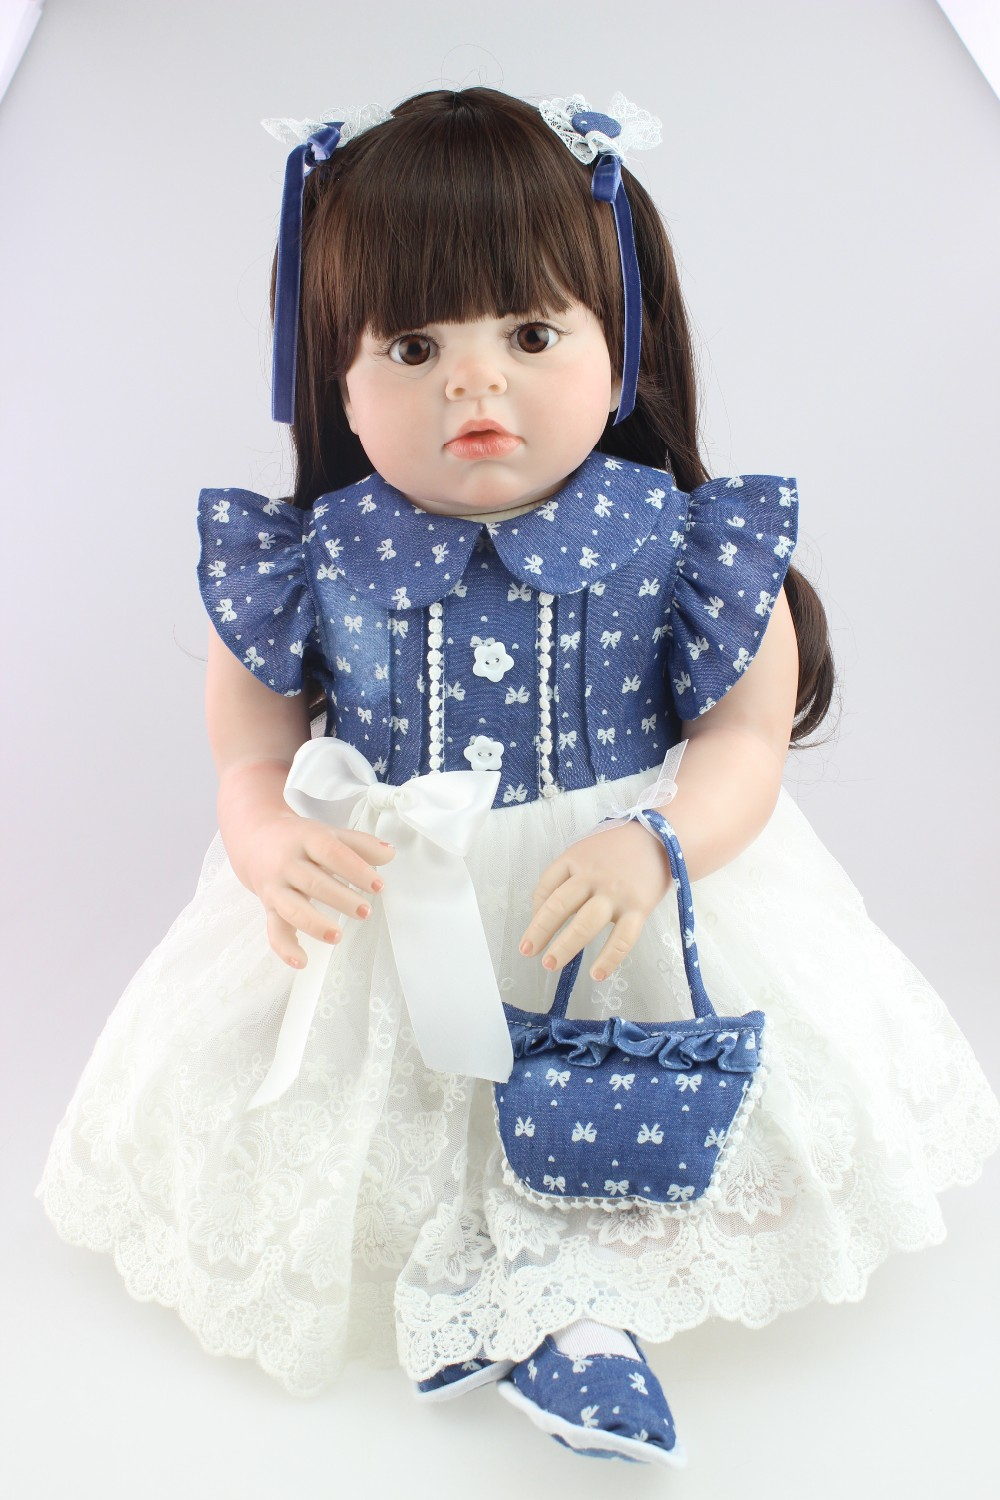 28inches fashion reborn todder doll New design realistic reborn doll with long wig soft silicone vinyl real gentle touch 2017 new design reborn sweet baby doll soft real gentle vinyl silicone touch body and wig hair